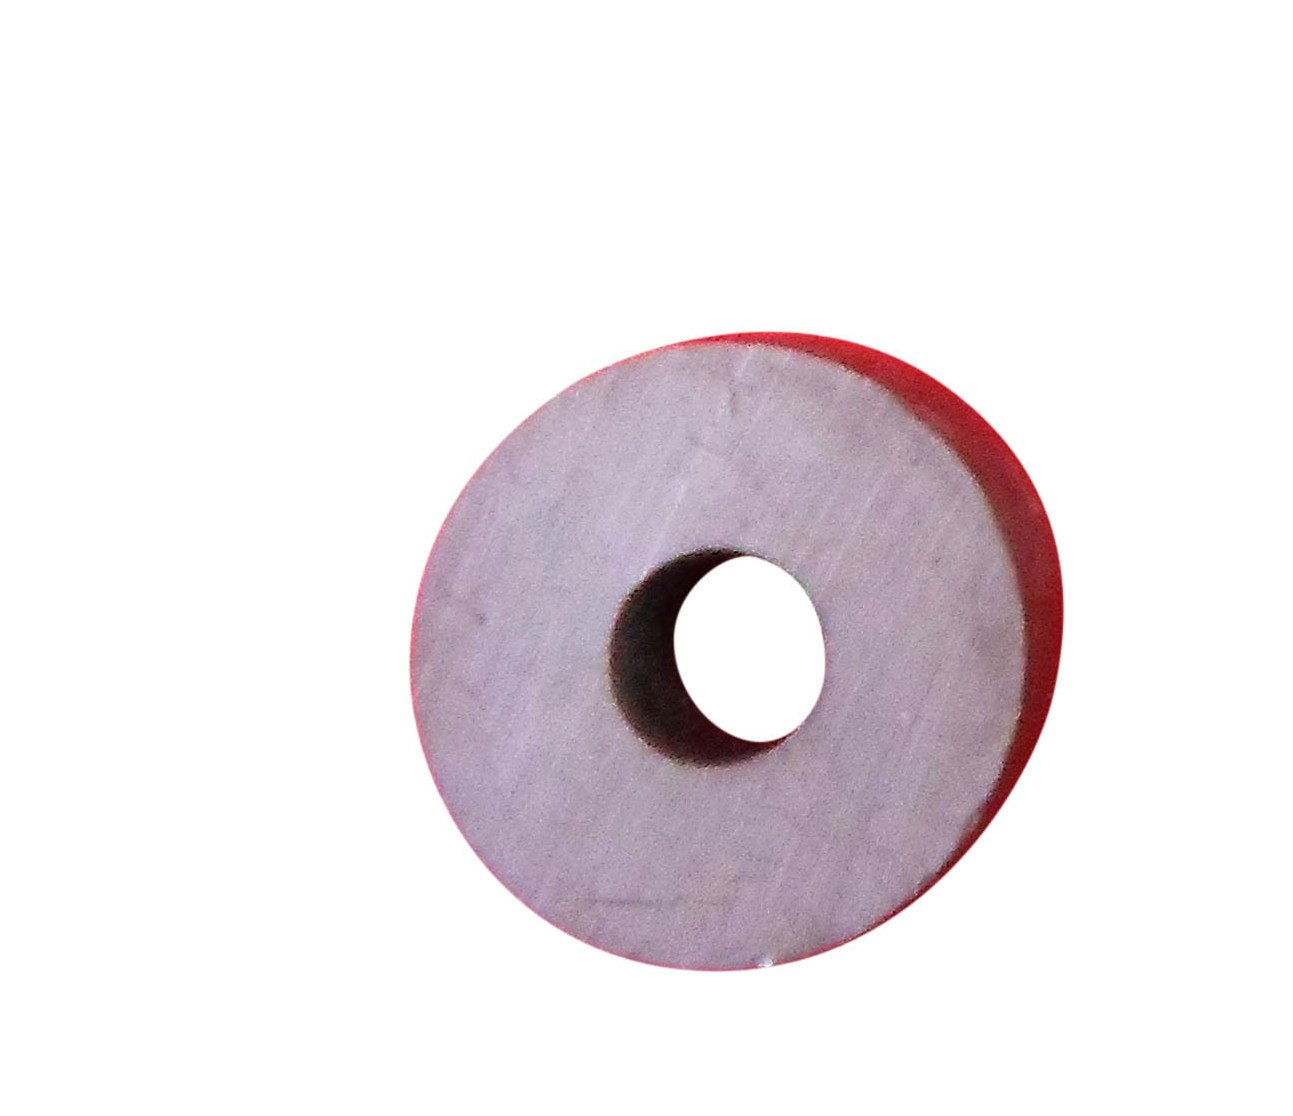 19 mm Diameter Ajax Scientific MA040-0018 Ceramic Ring Magnet